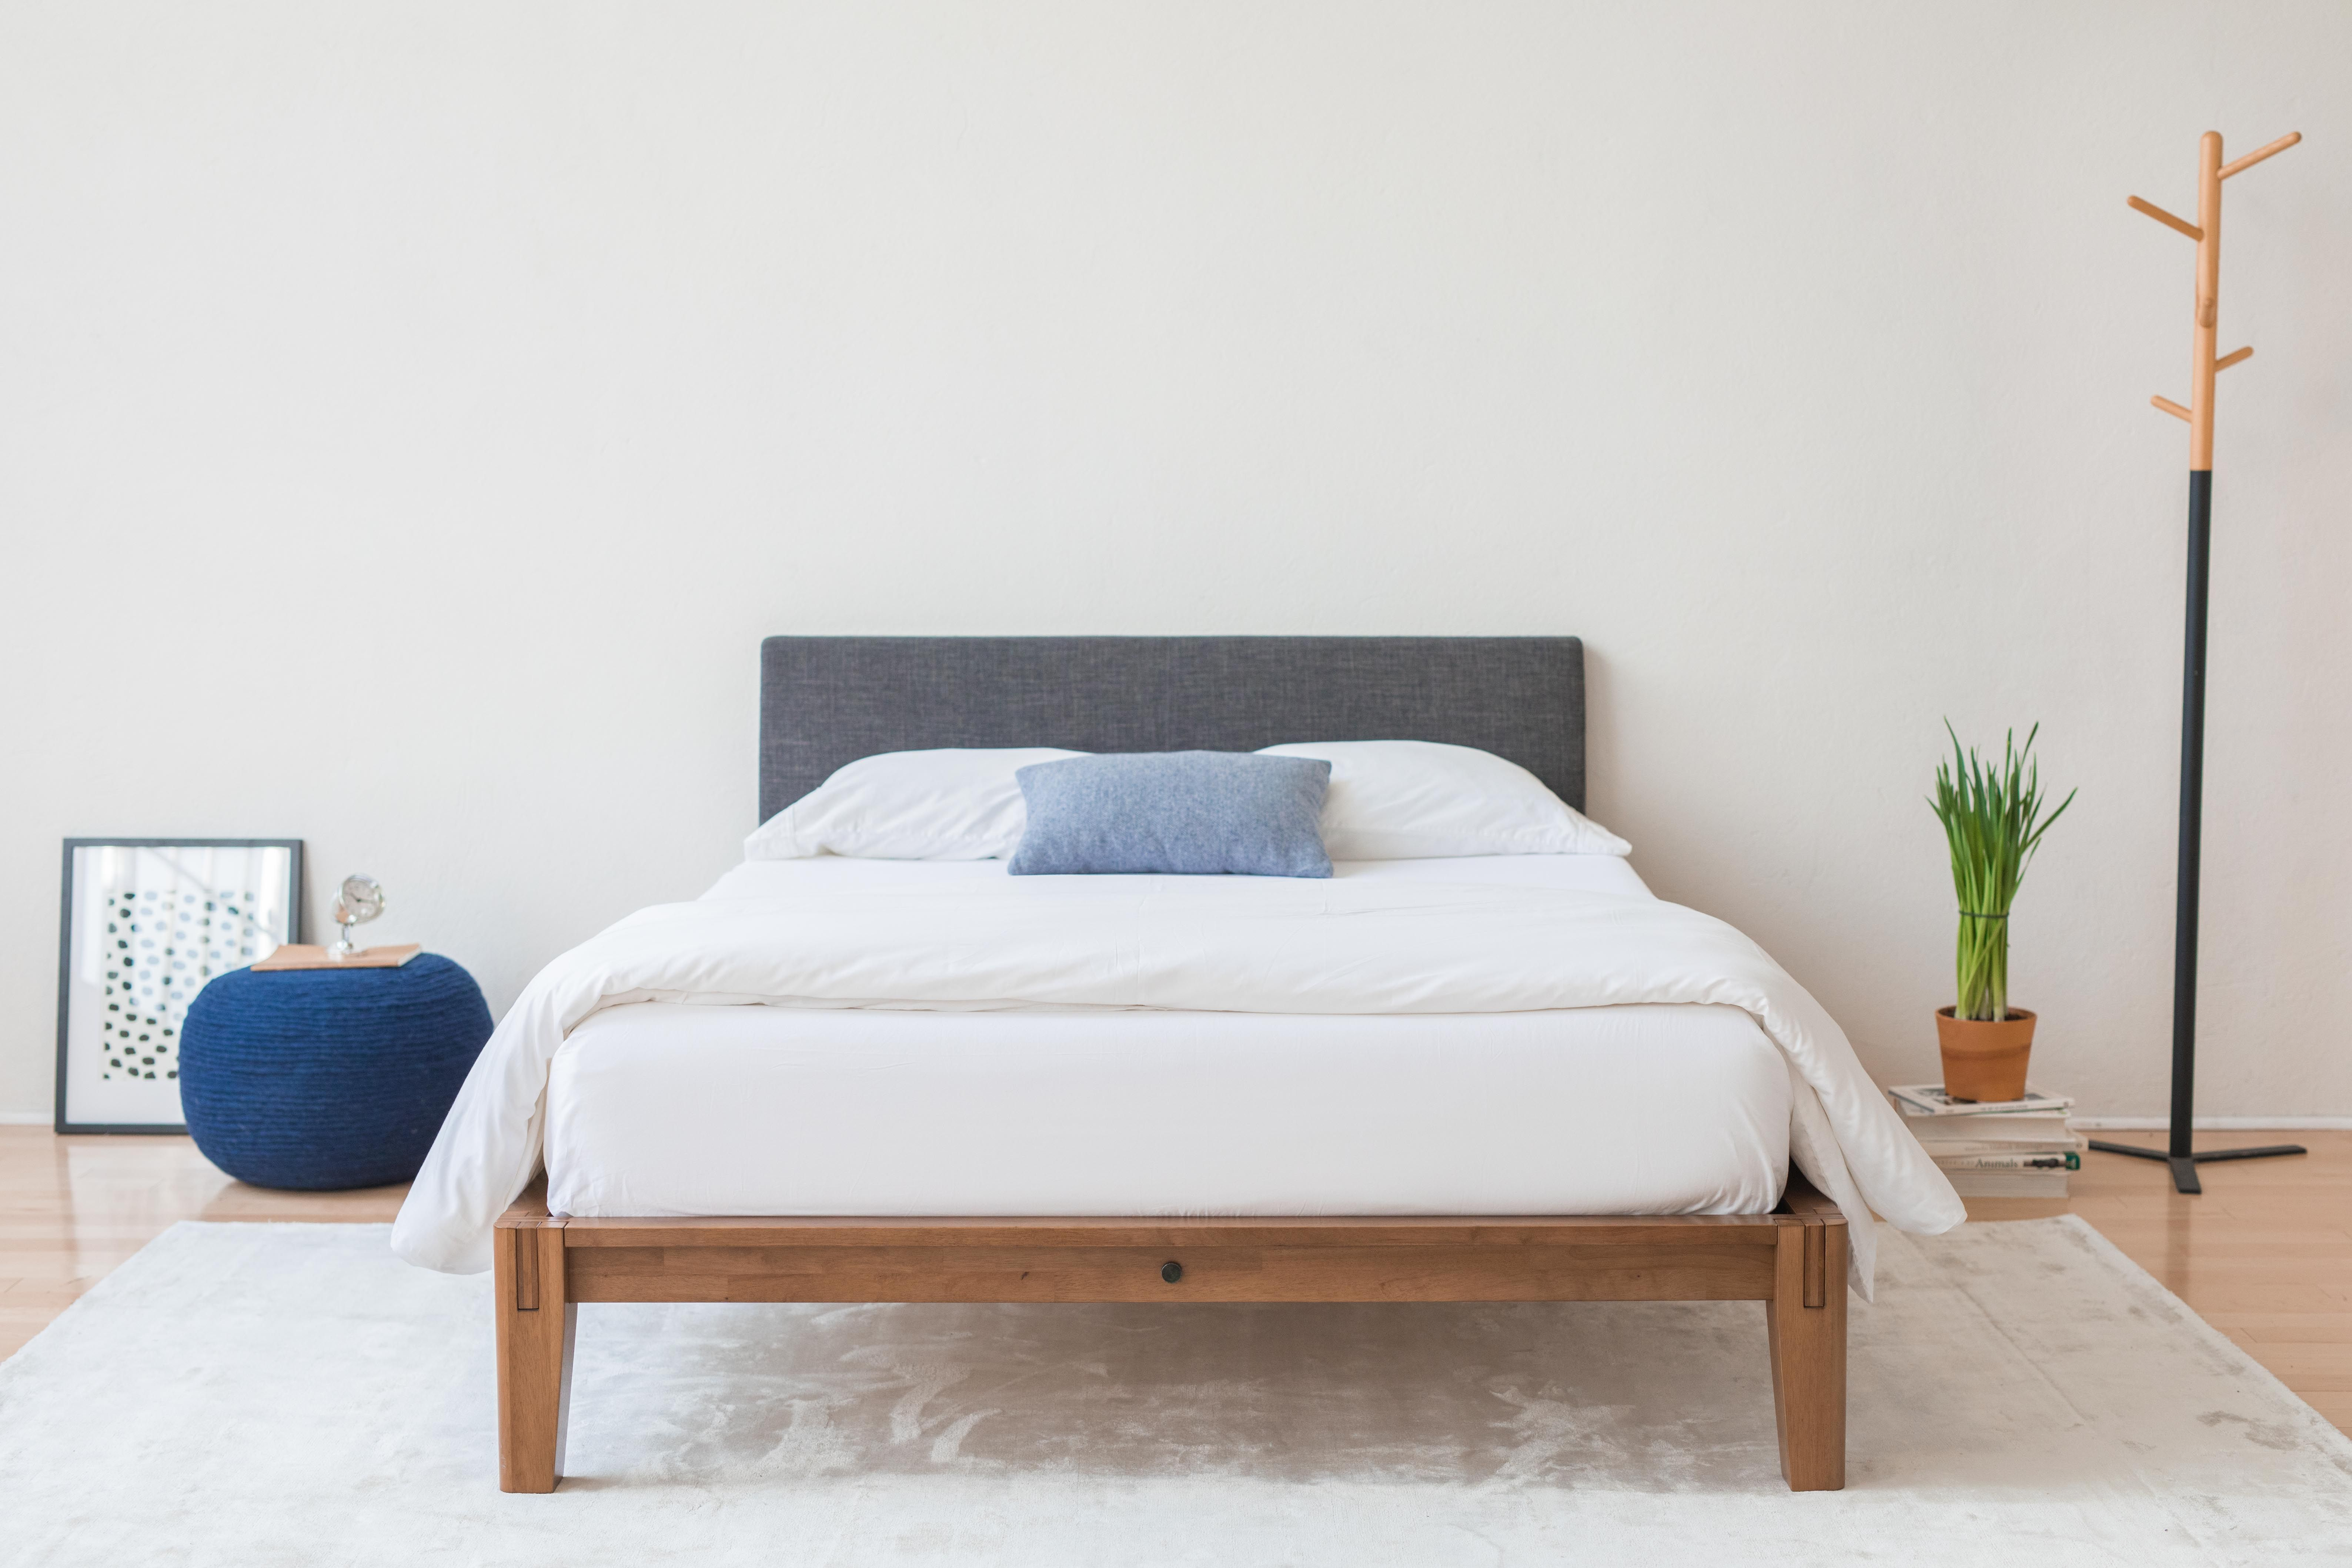 The Bed in 2020 Japanese style bed, Bed, Platform bed frame